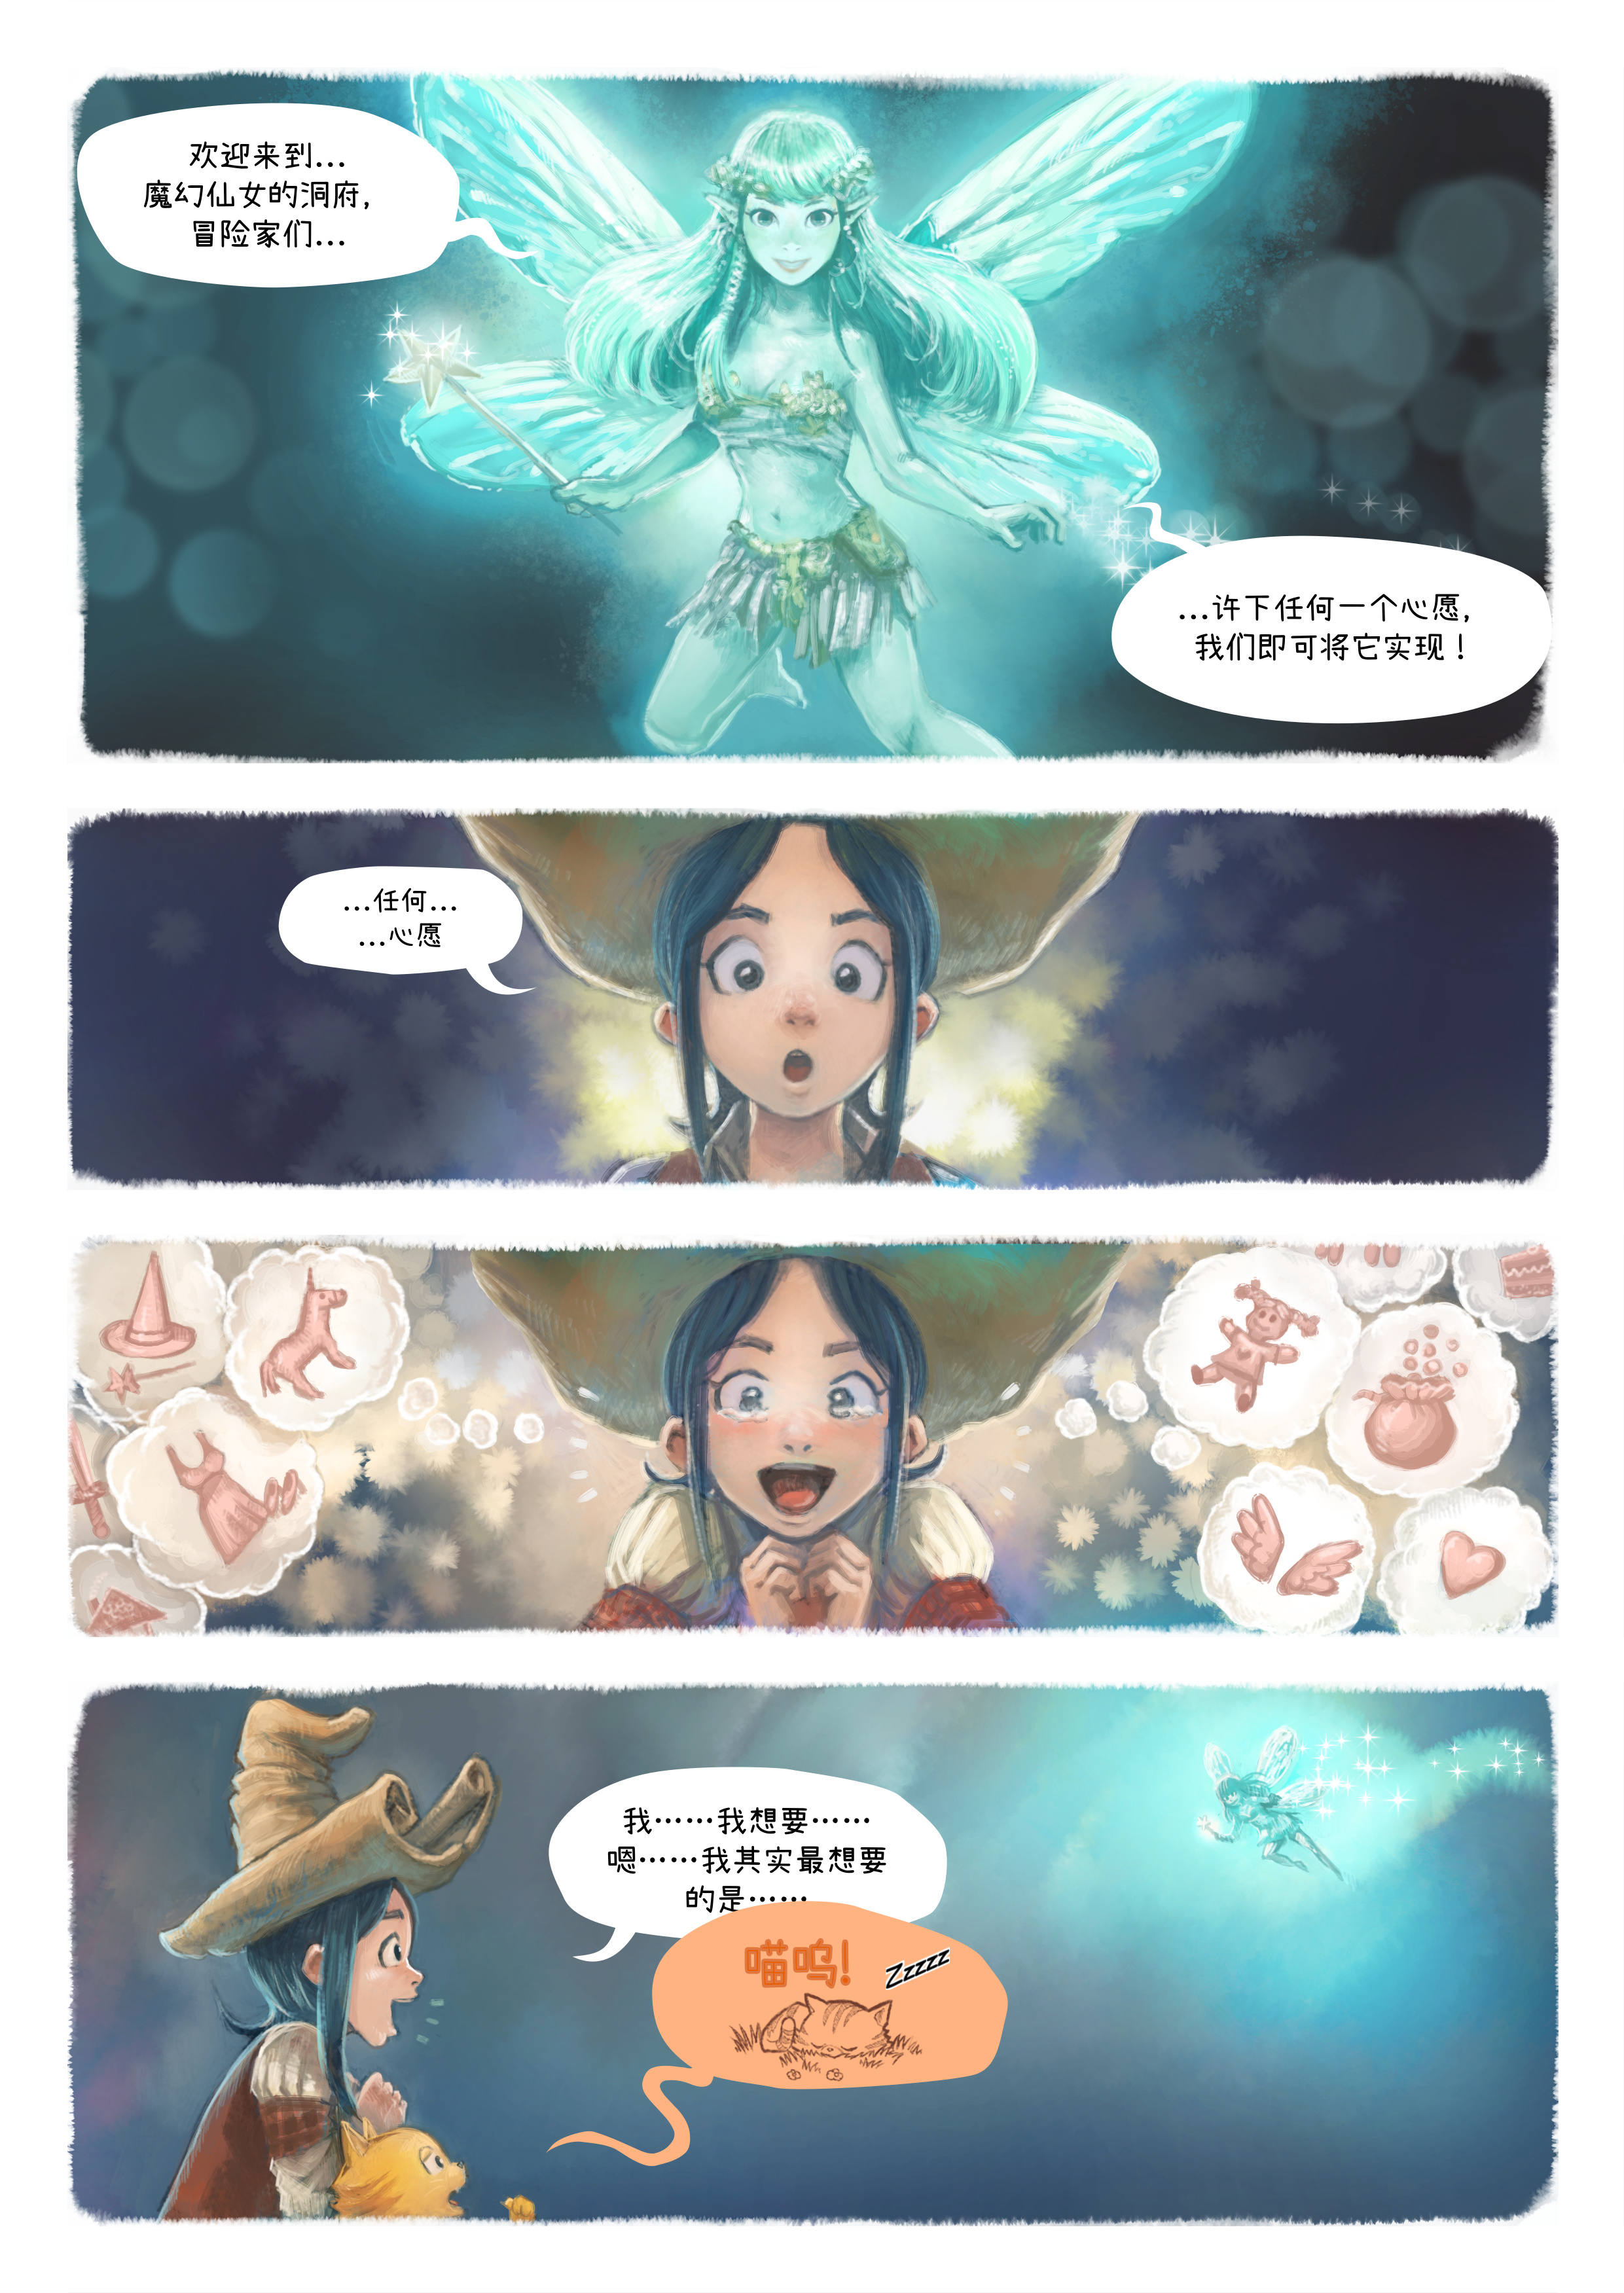 A webcomic page of Pepper&Carrot, 漫画全集 7 [cn], 页面 4